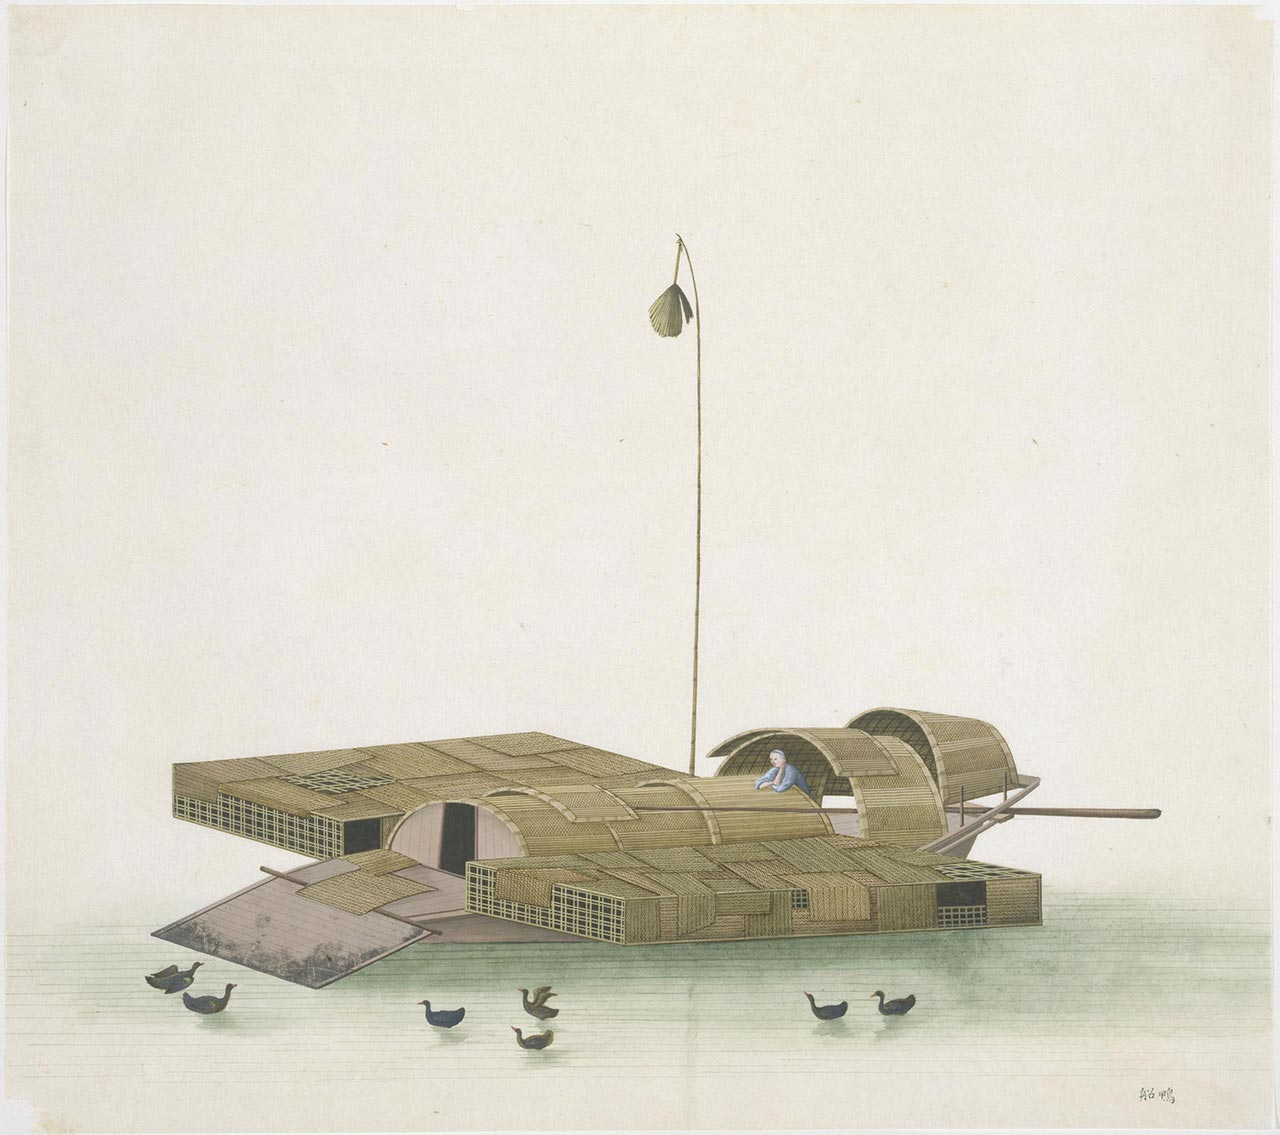 A duck boat. Duck-raising was a very common means of livelihood for the population of the Pearl River delta. The boat was specially designed to function both as the home and transport vessel for the ducks.